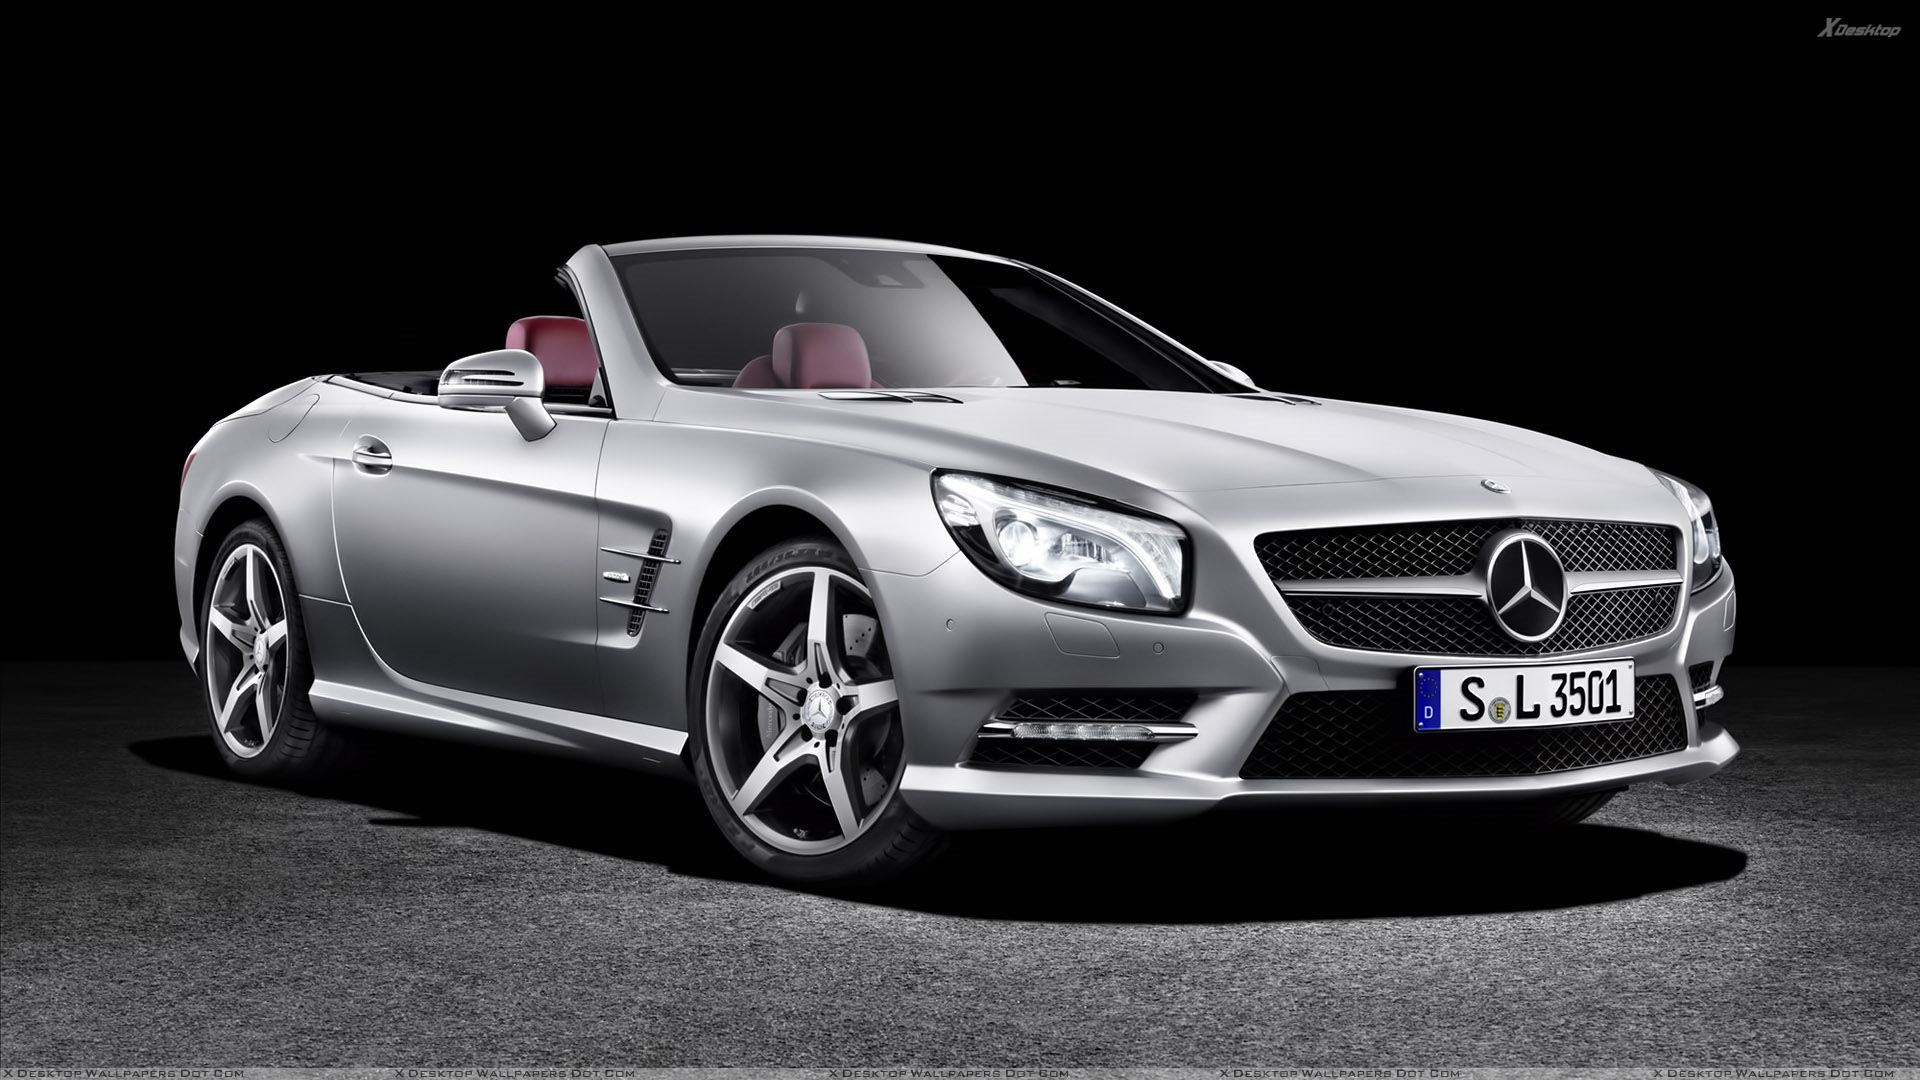 Mercedes Benz Wallpapers Photos Images In Hd